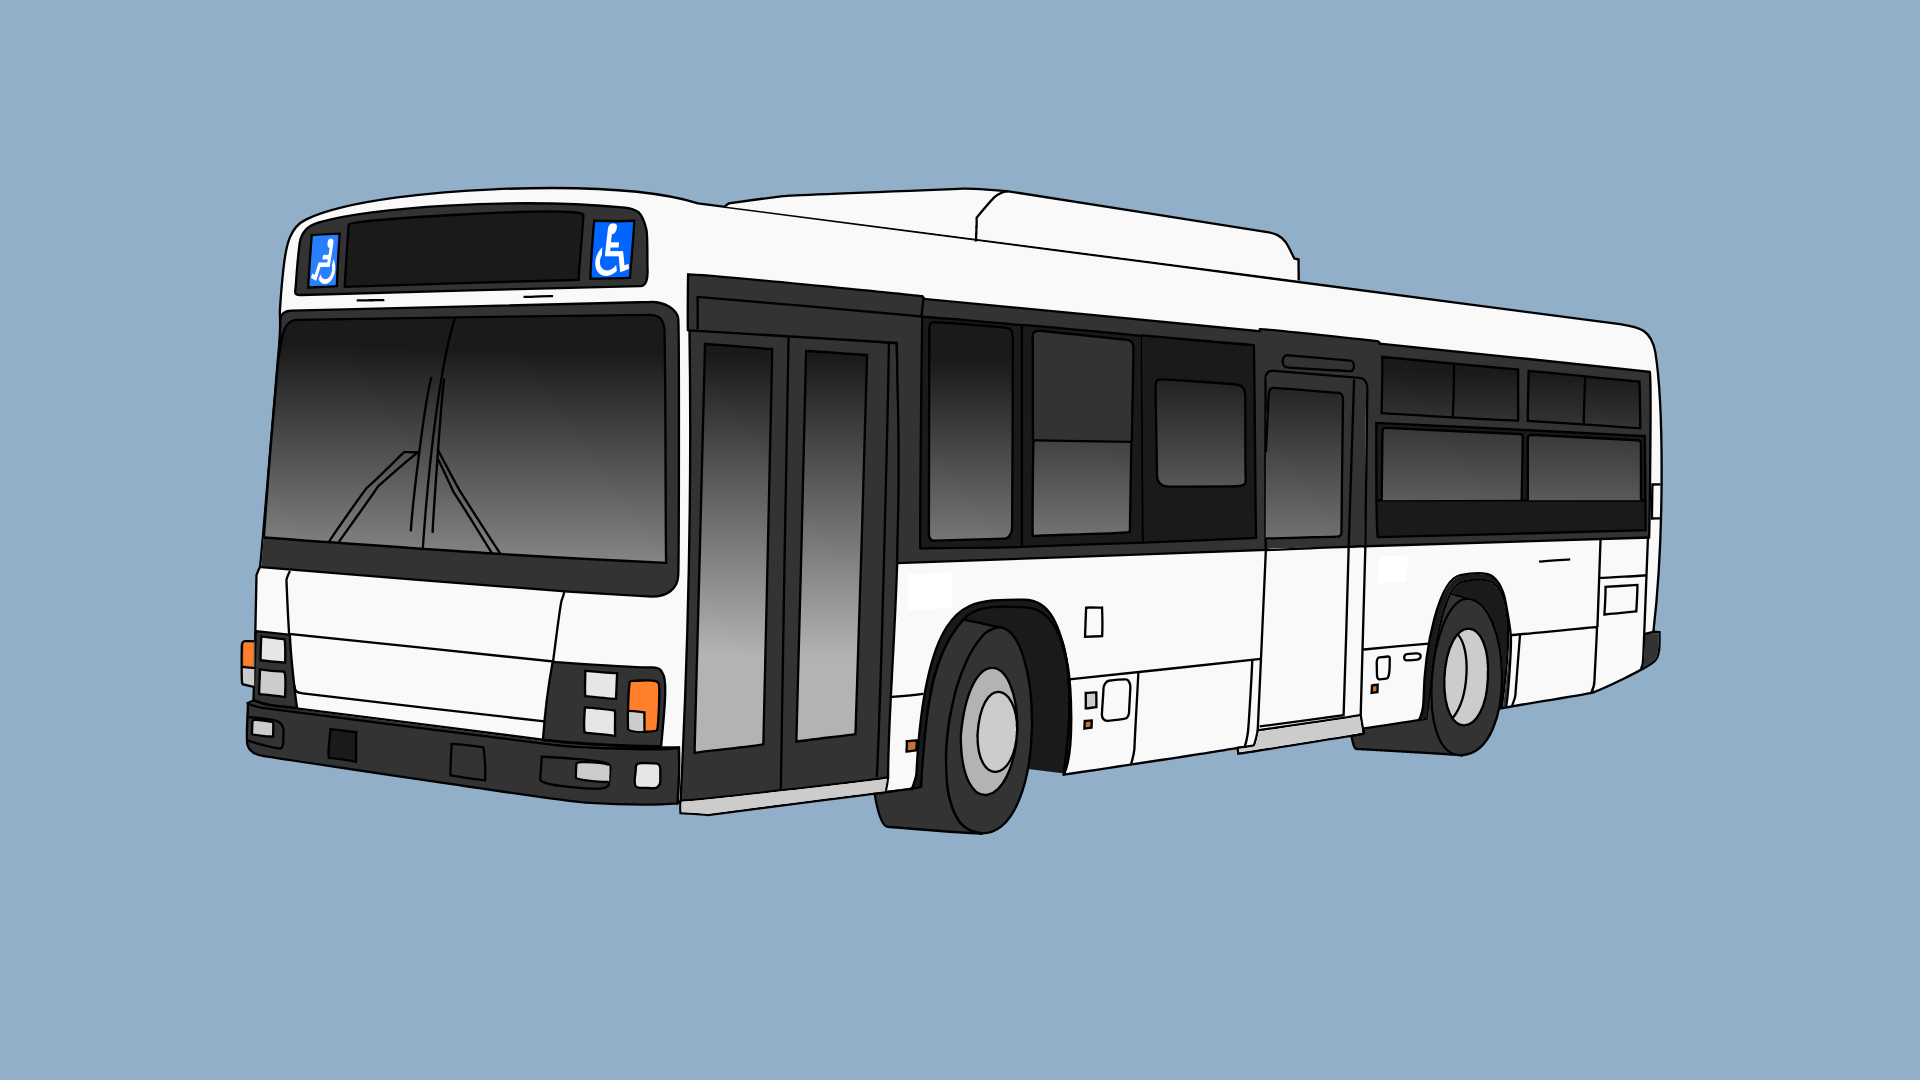 Foggy grey background with a white and black bus in the middle